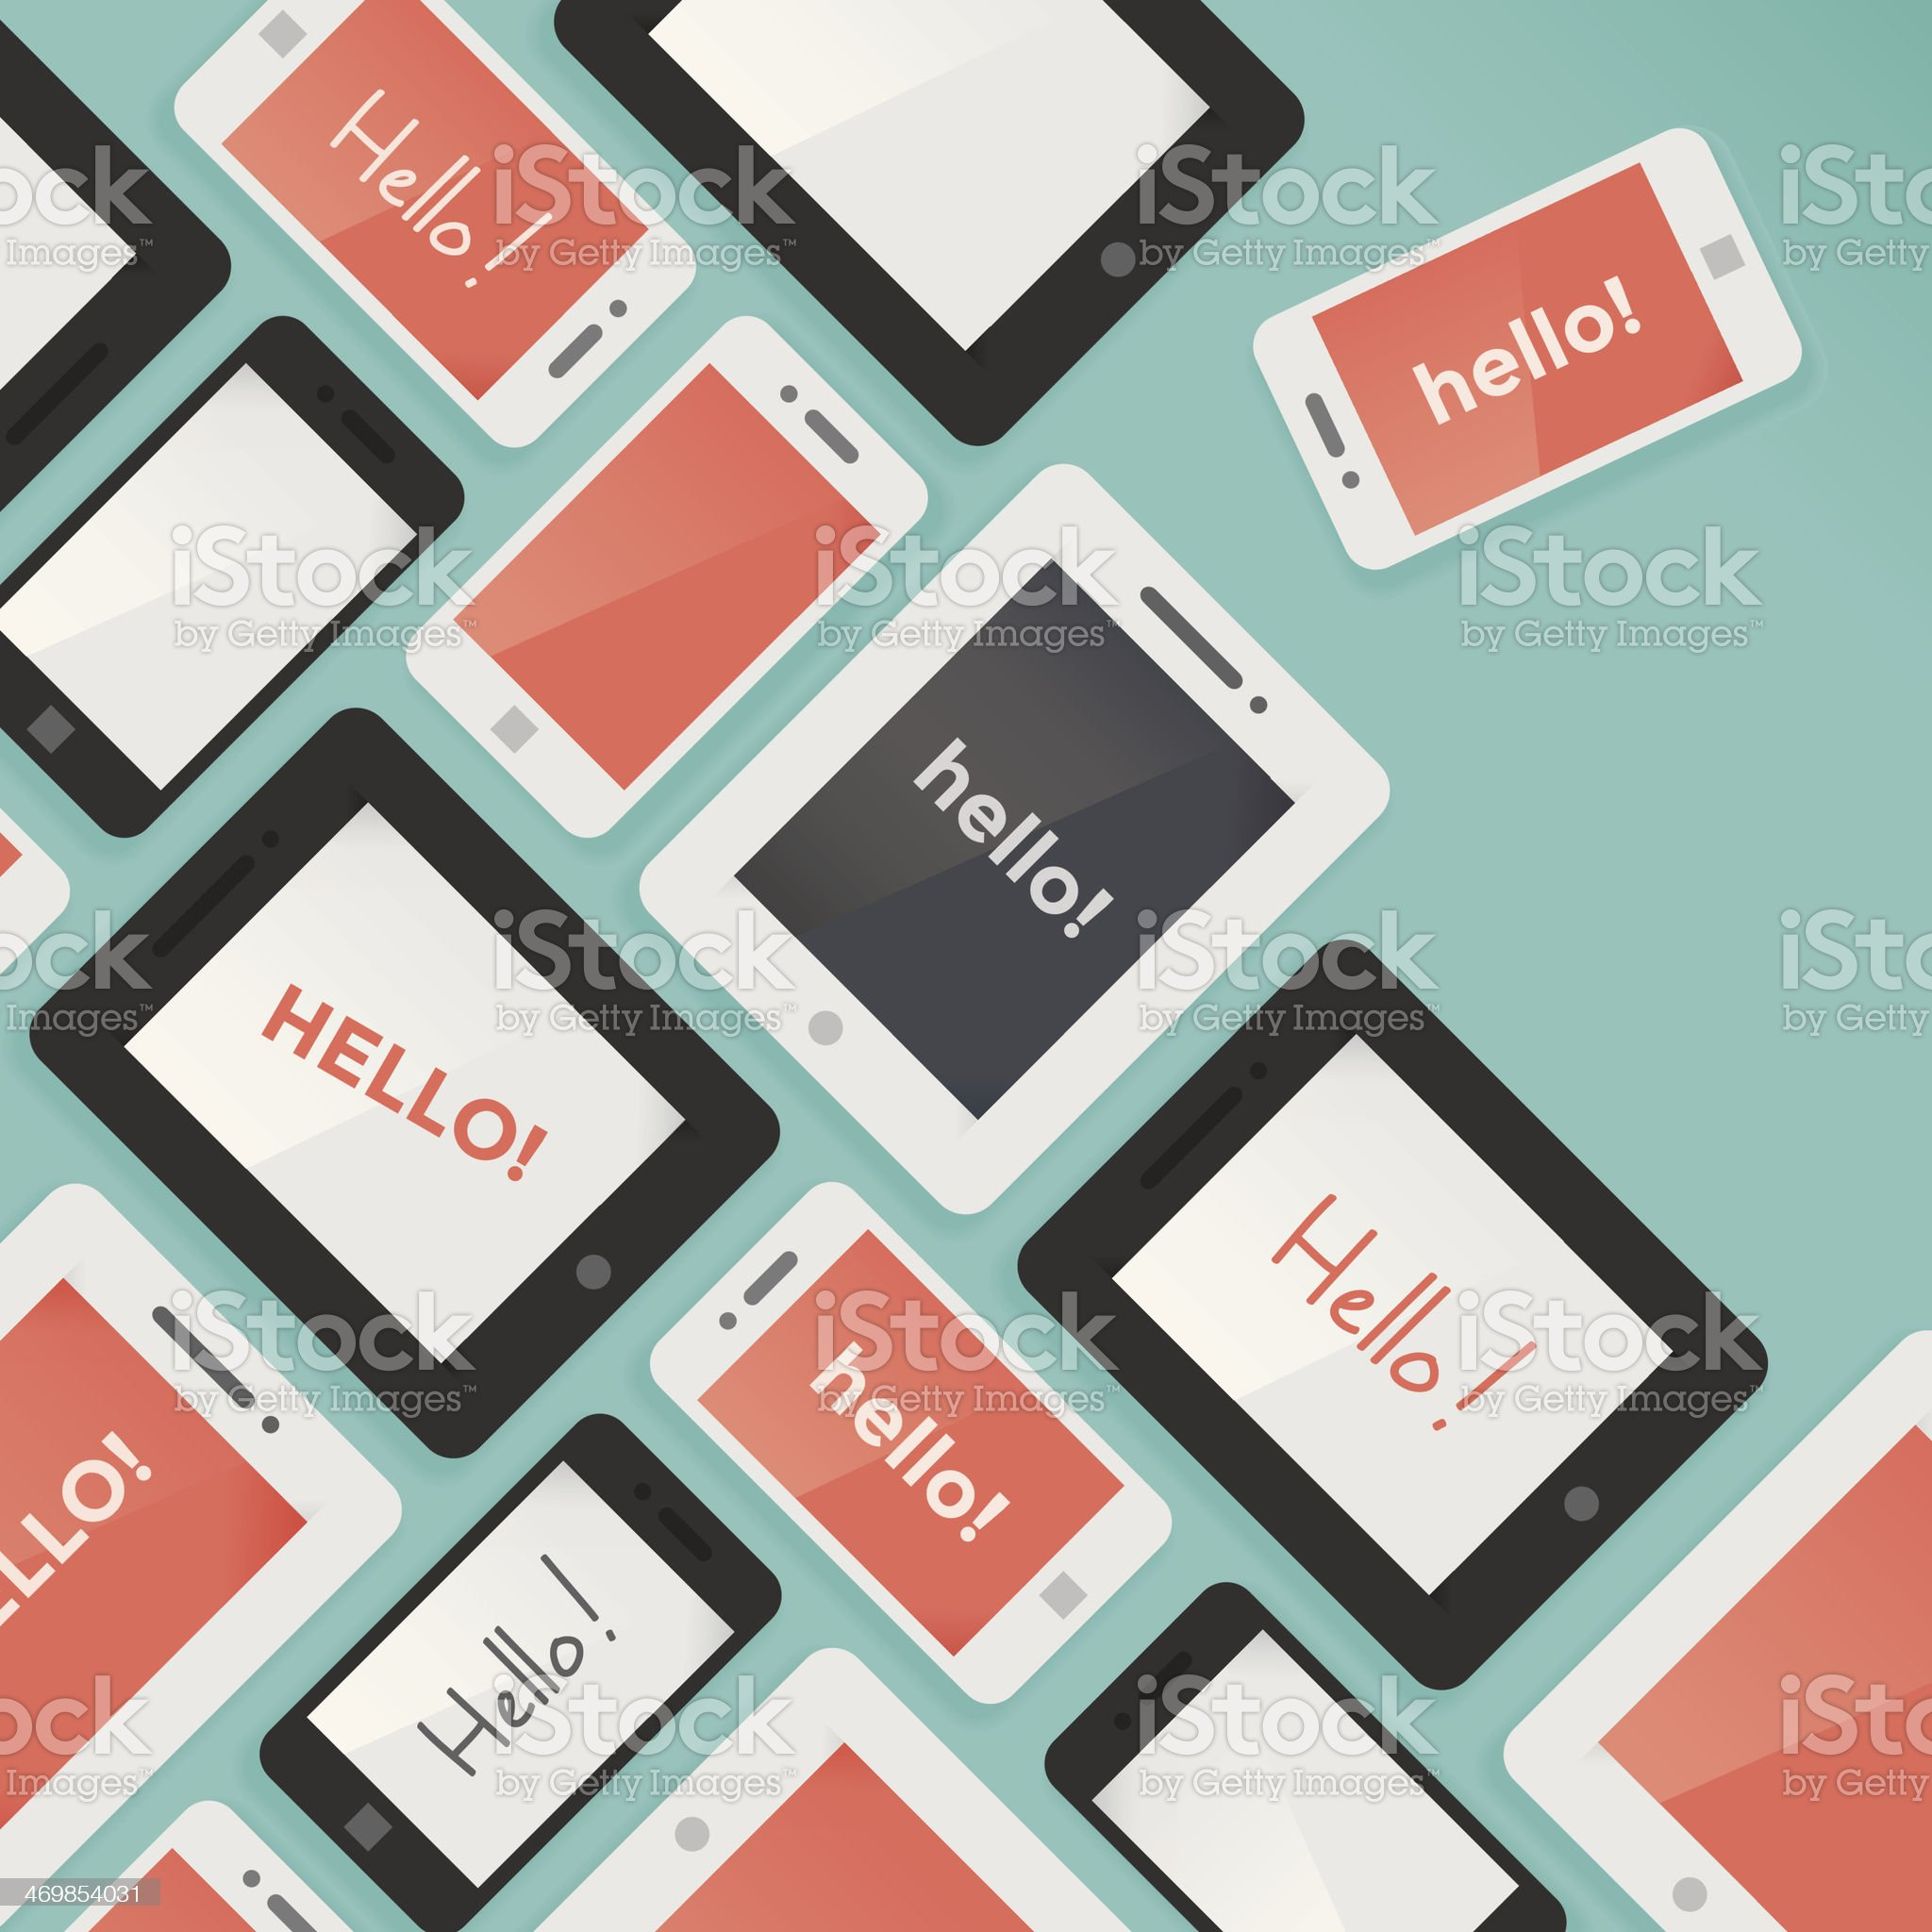 Mobile phones and tablet computers with Hello text background royalty-free stock vector art